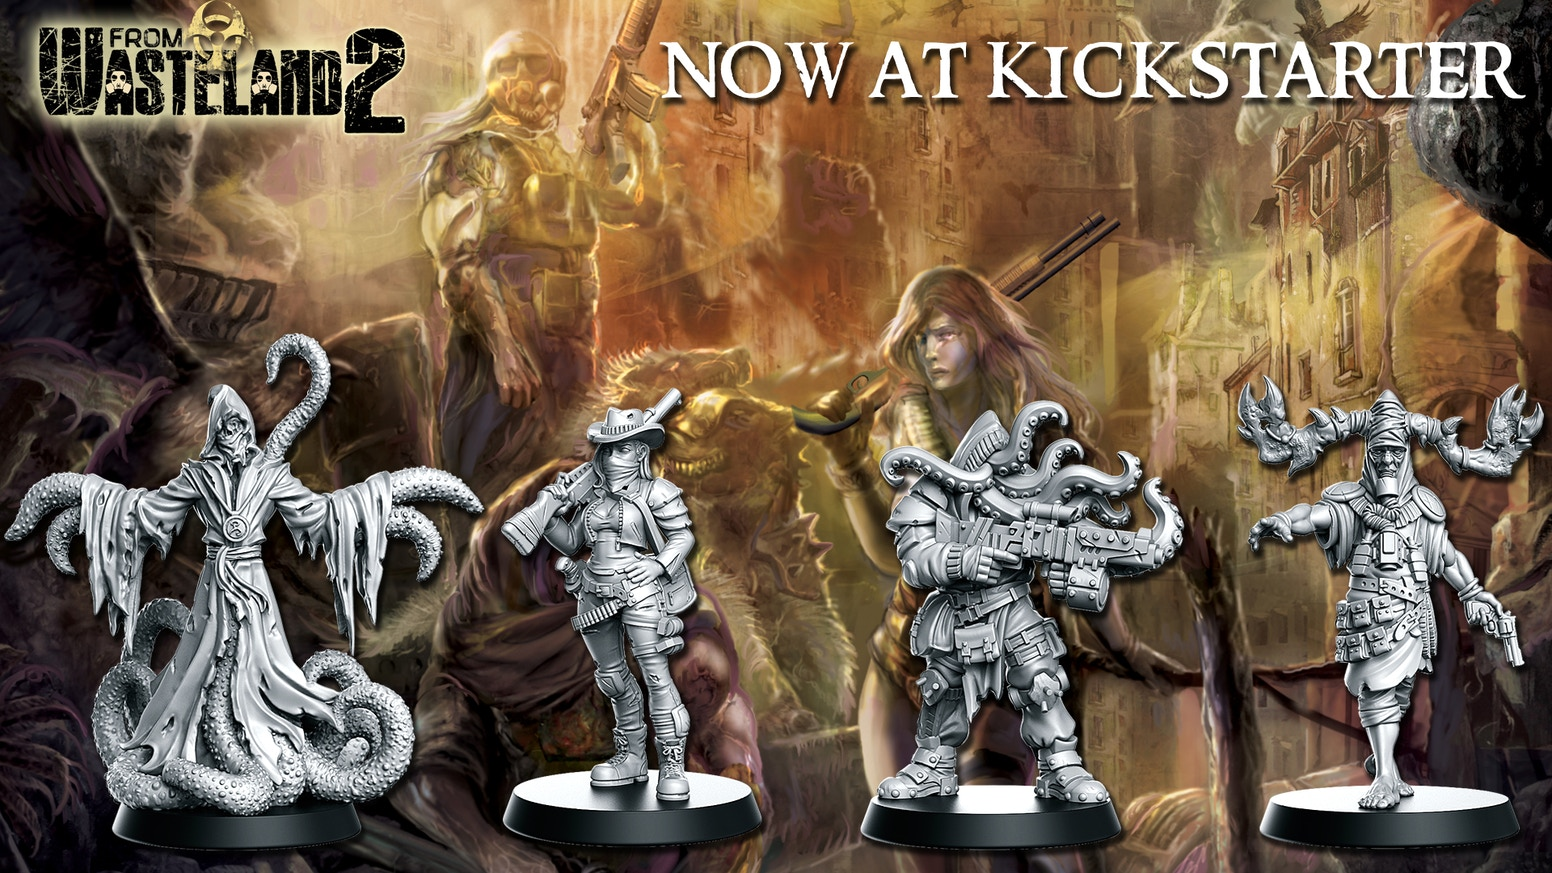 Upgrade your RPG and board game with awesome miniatures. 32 mm scale, great quality, hard resin miniatures. Free shipping worldwide.